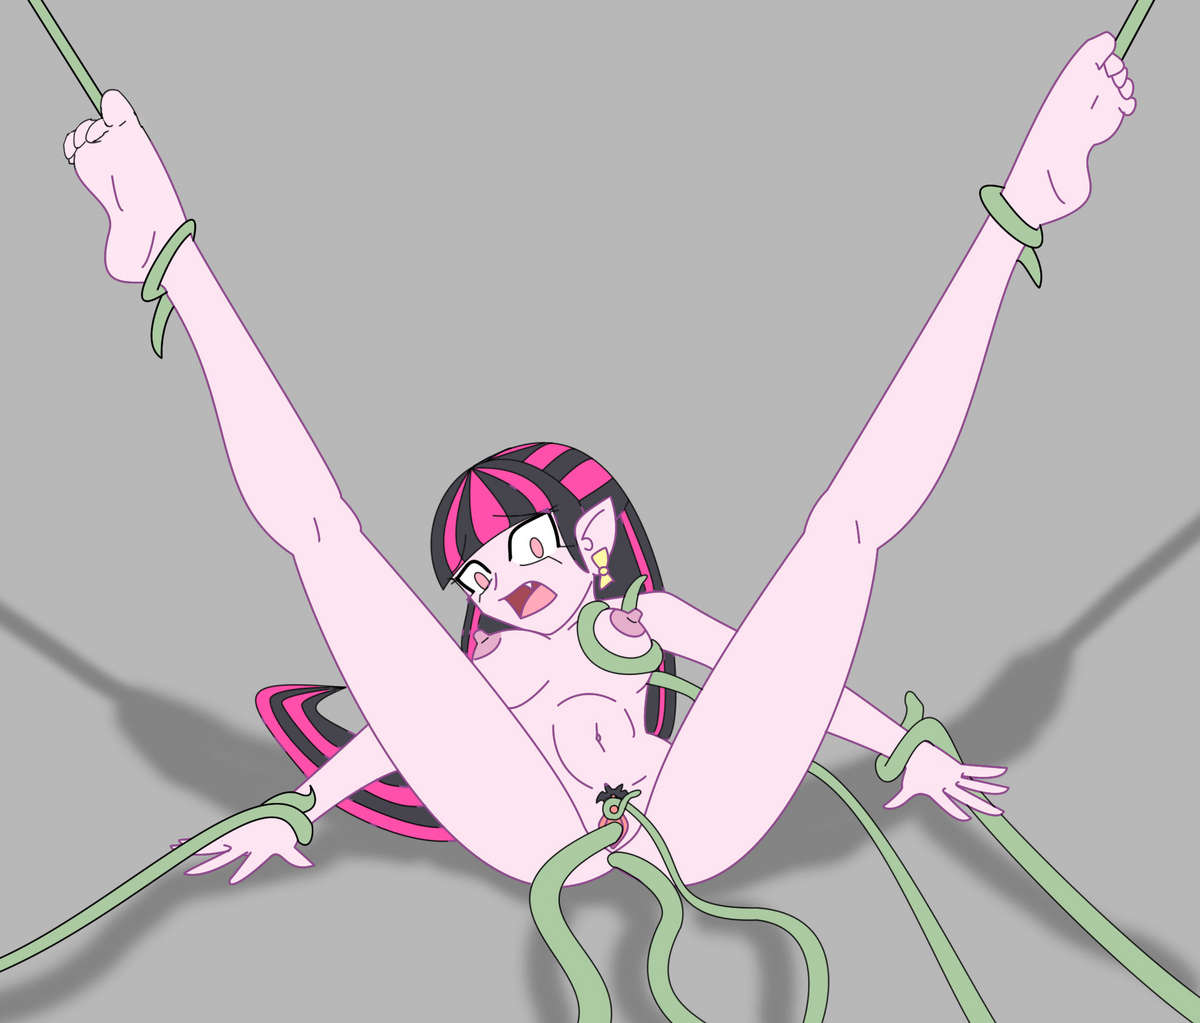 Free porn Monster High galleries Page 1 - ImageFap